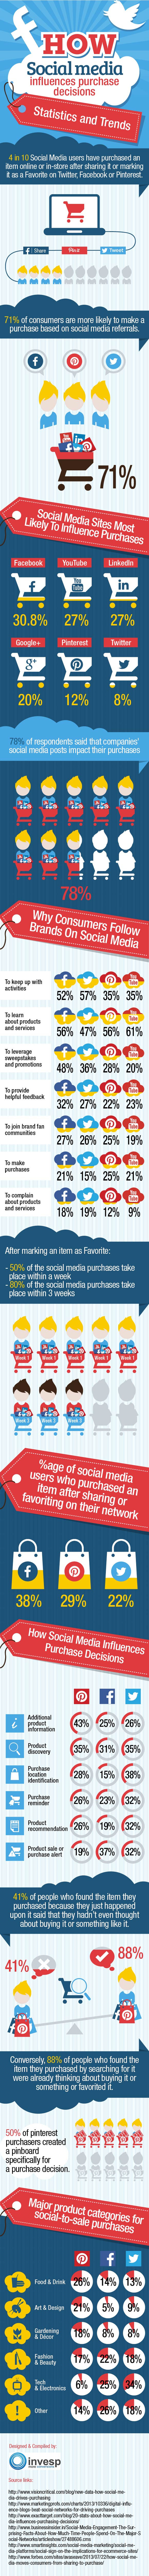 How Social Media Influences Purchase Decisions – Statistics And Trends #infographic #socialmedia